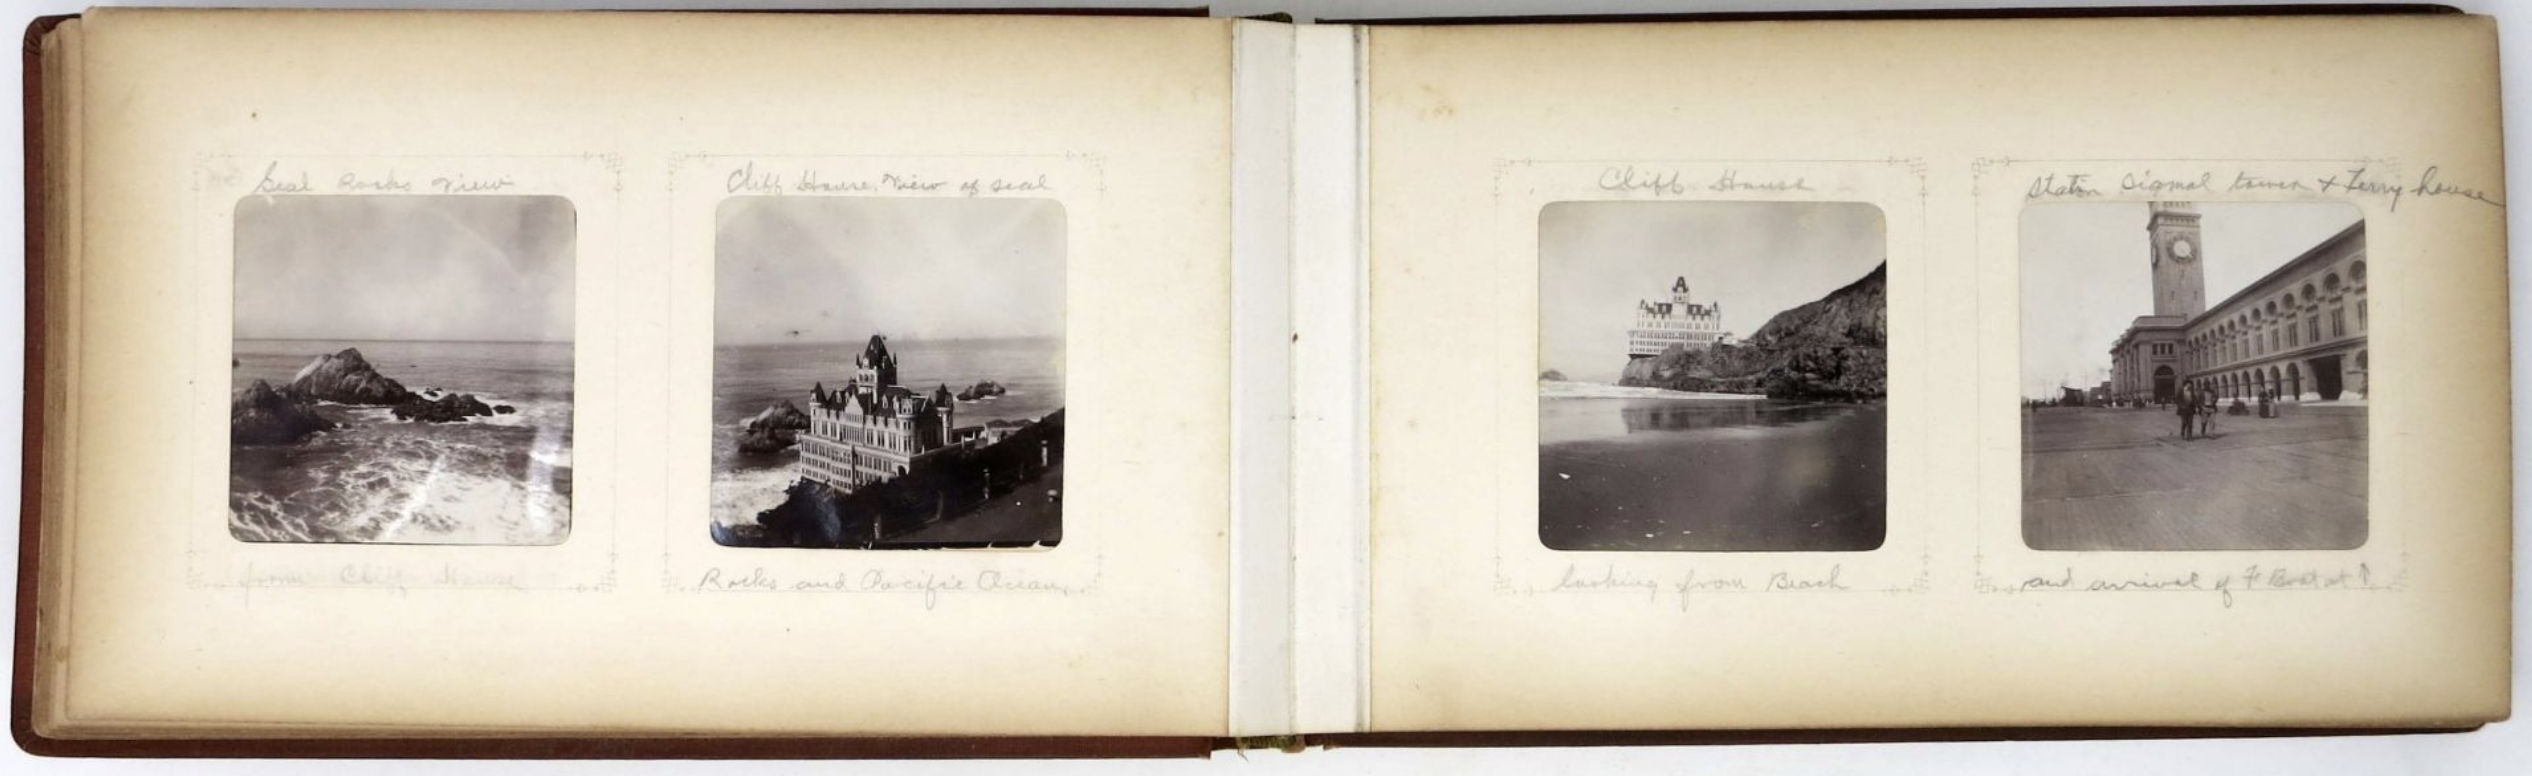 This family travel photo album dates back to the turn of the century... the 20th century, that is, and focuses on California, New Mexico, Arizona, Kansas, Alabama and Texas. Check it out here.